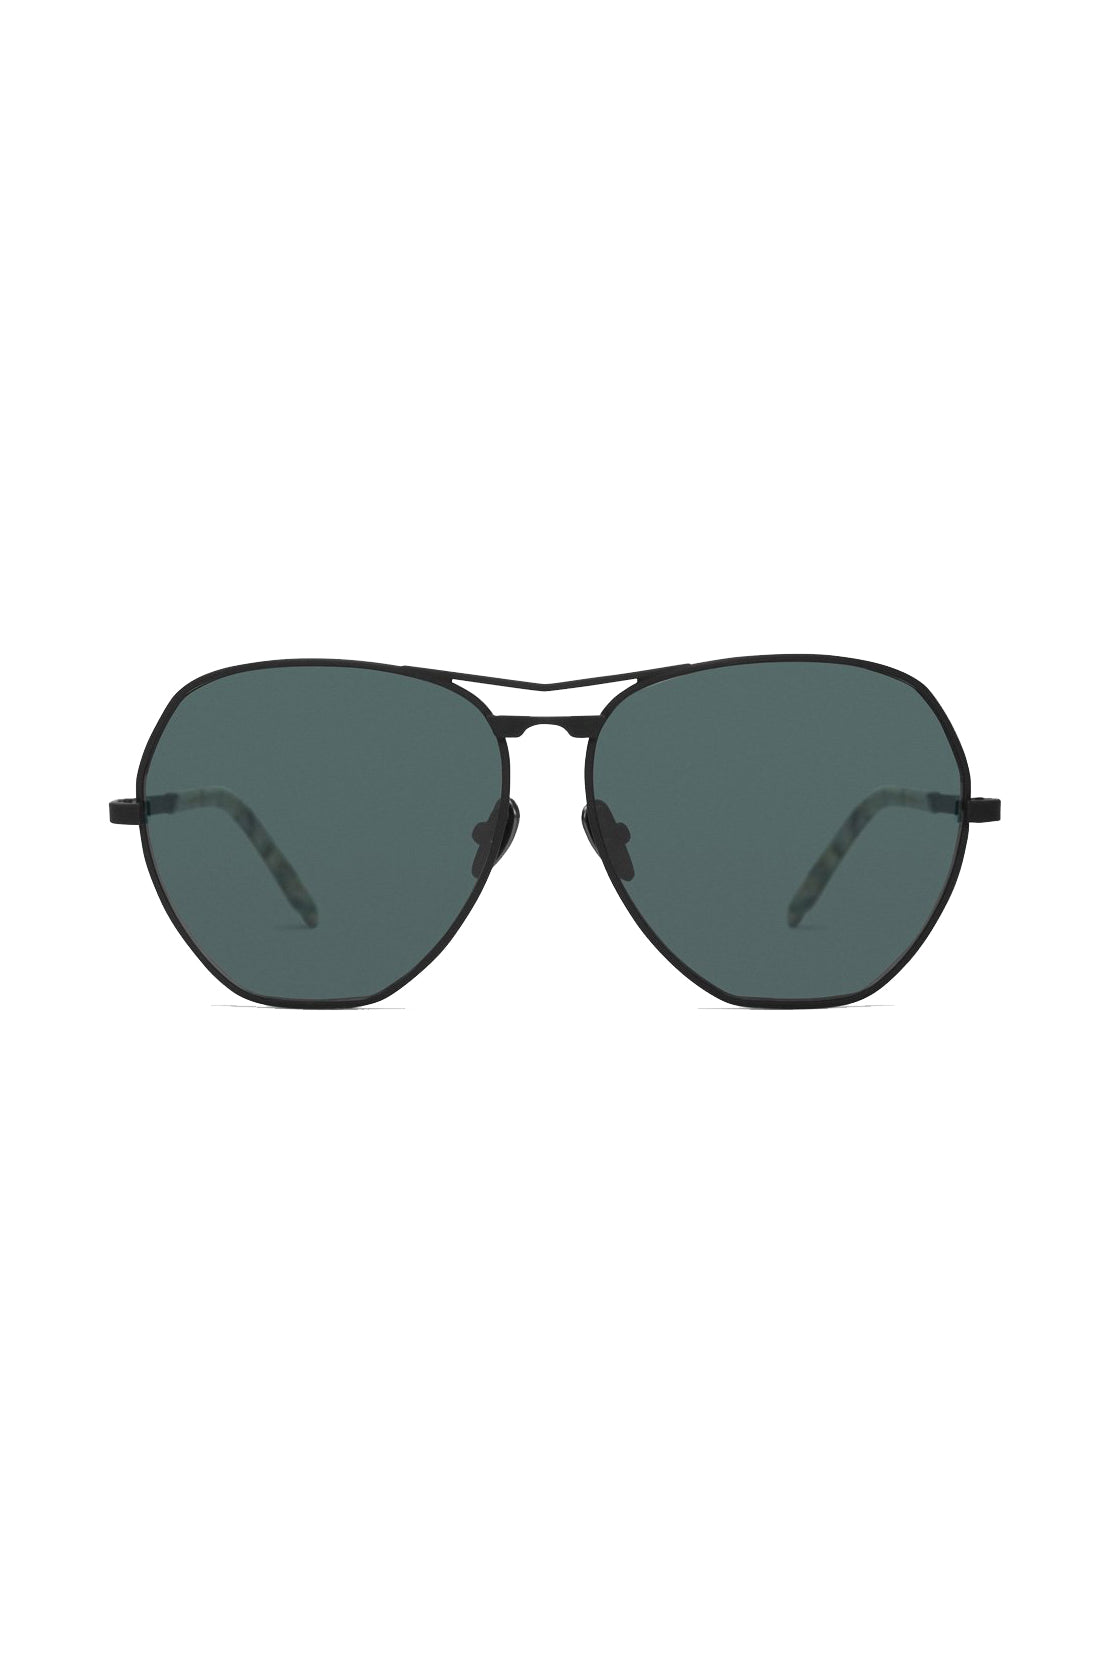 Avatar 103 Sunglasses